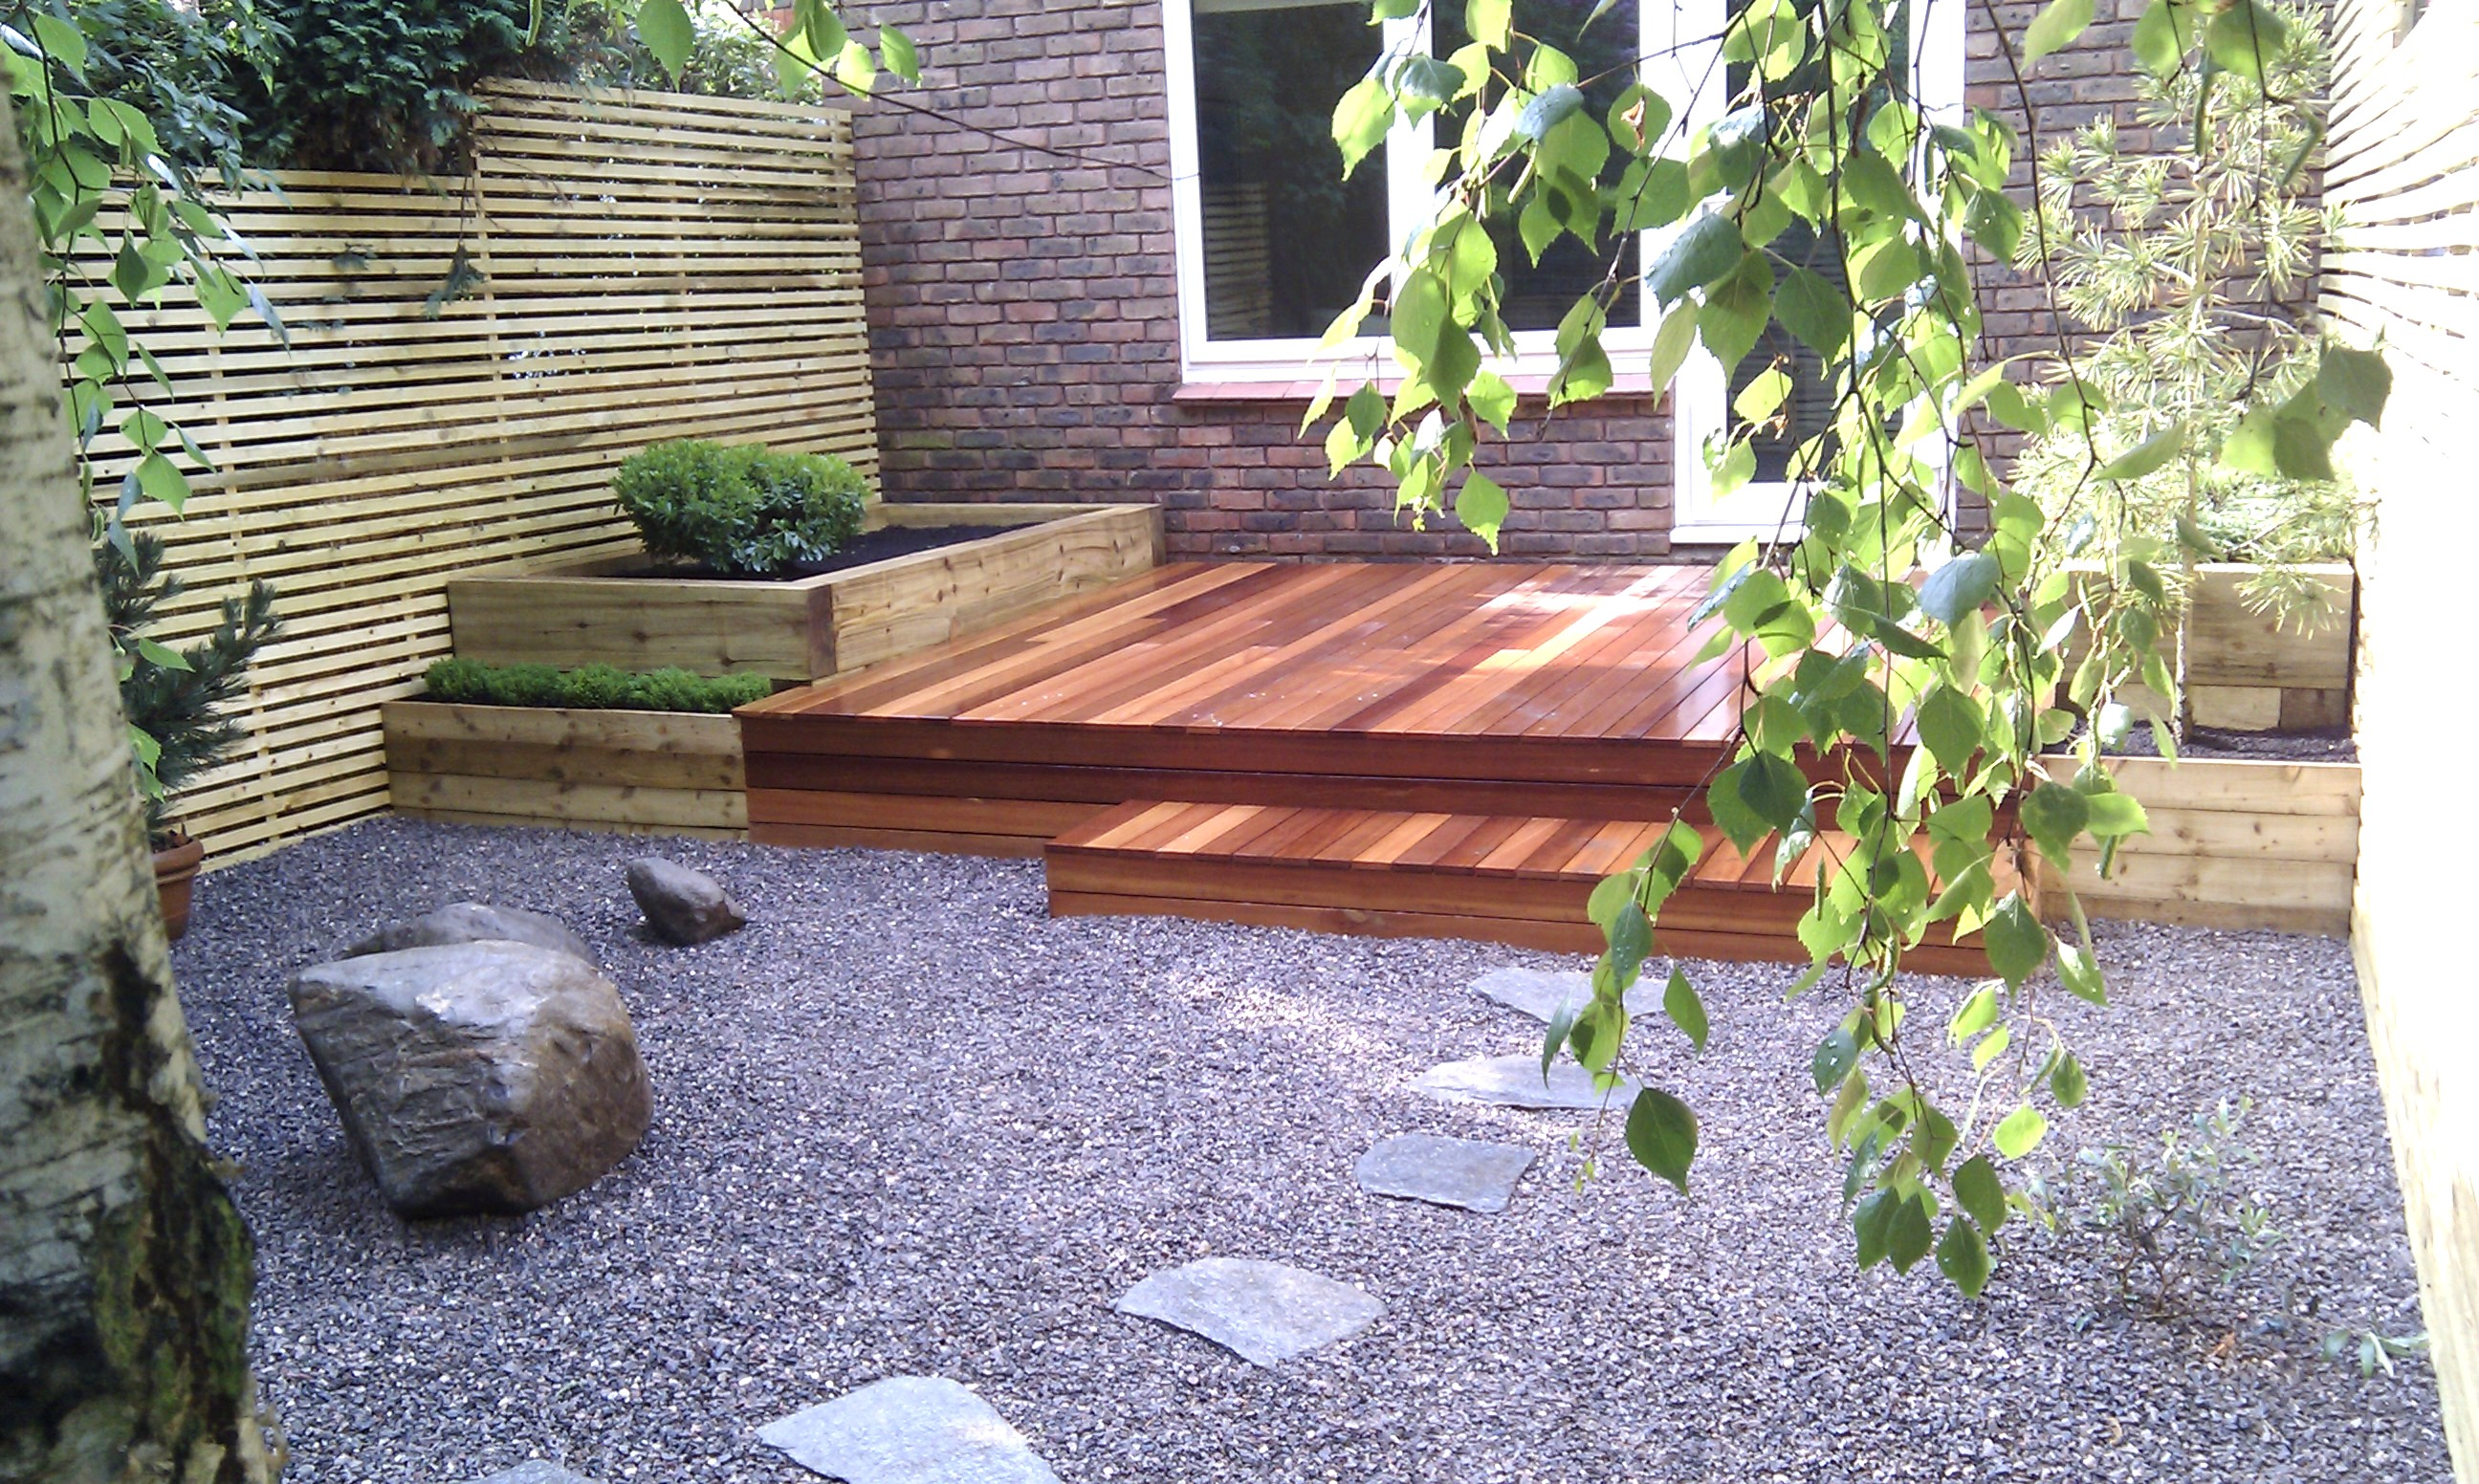 hardwood decking minimalist limestone chippings privacy screen south east london (37)